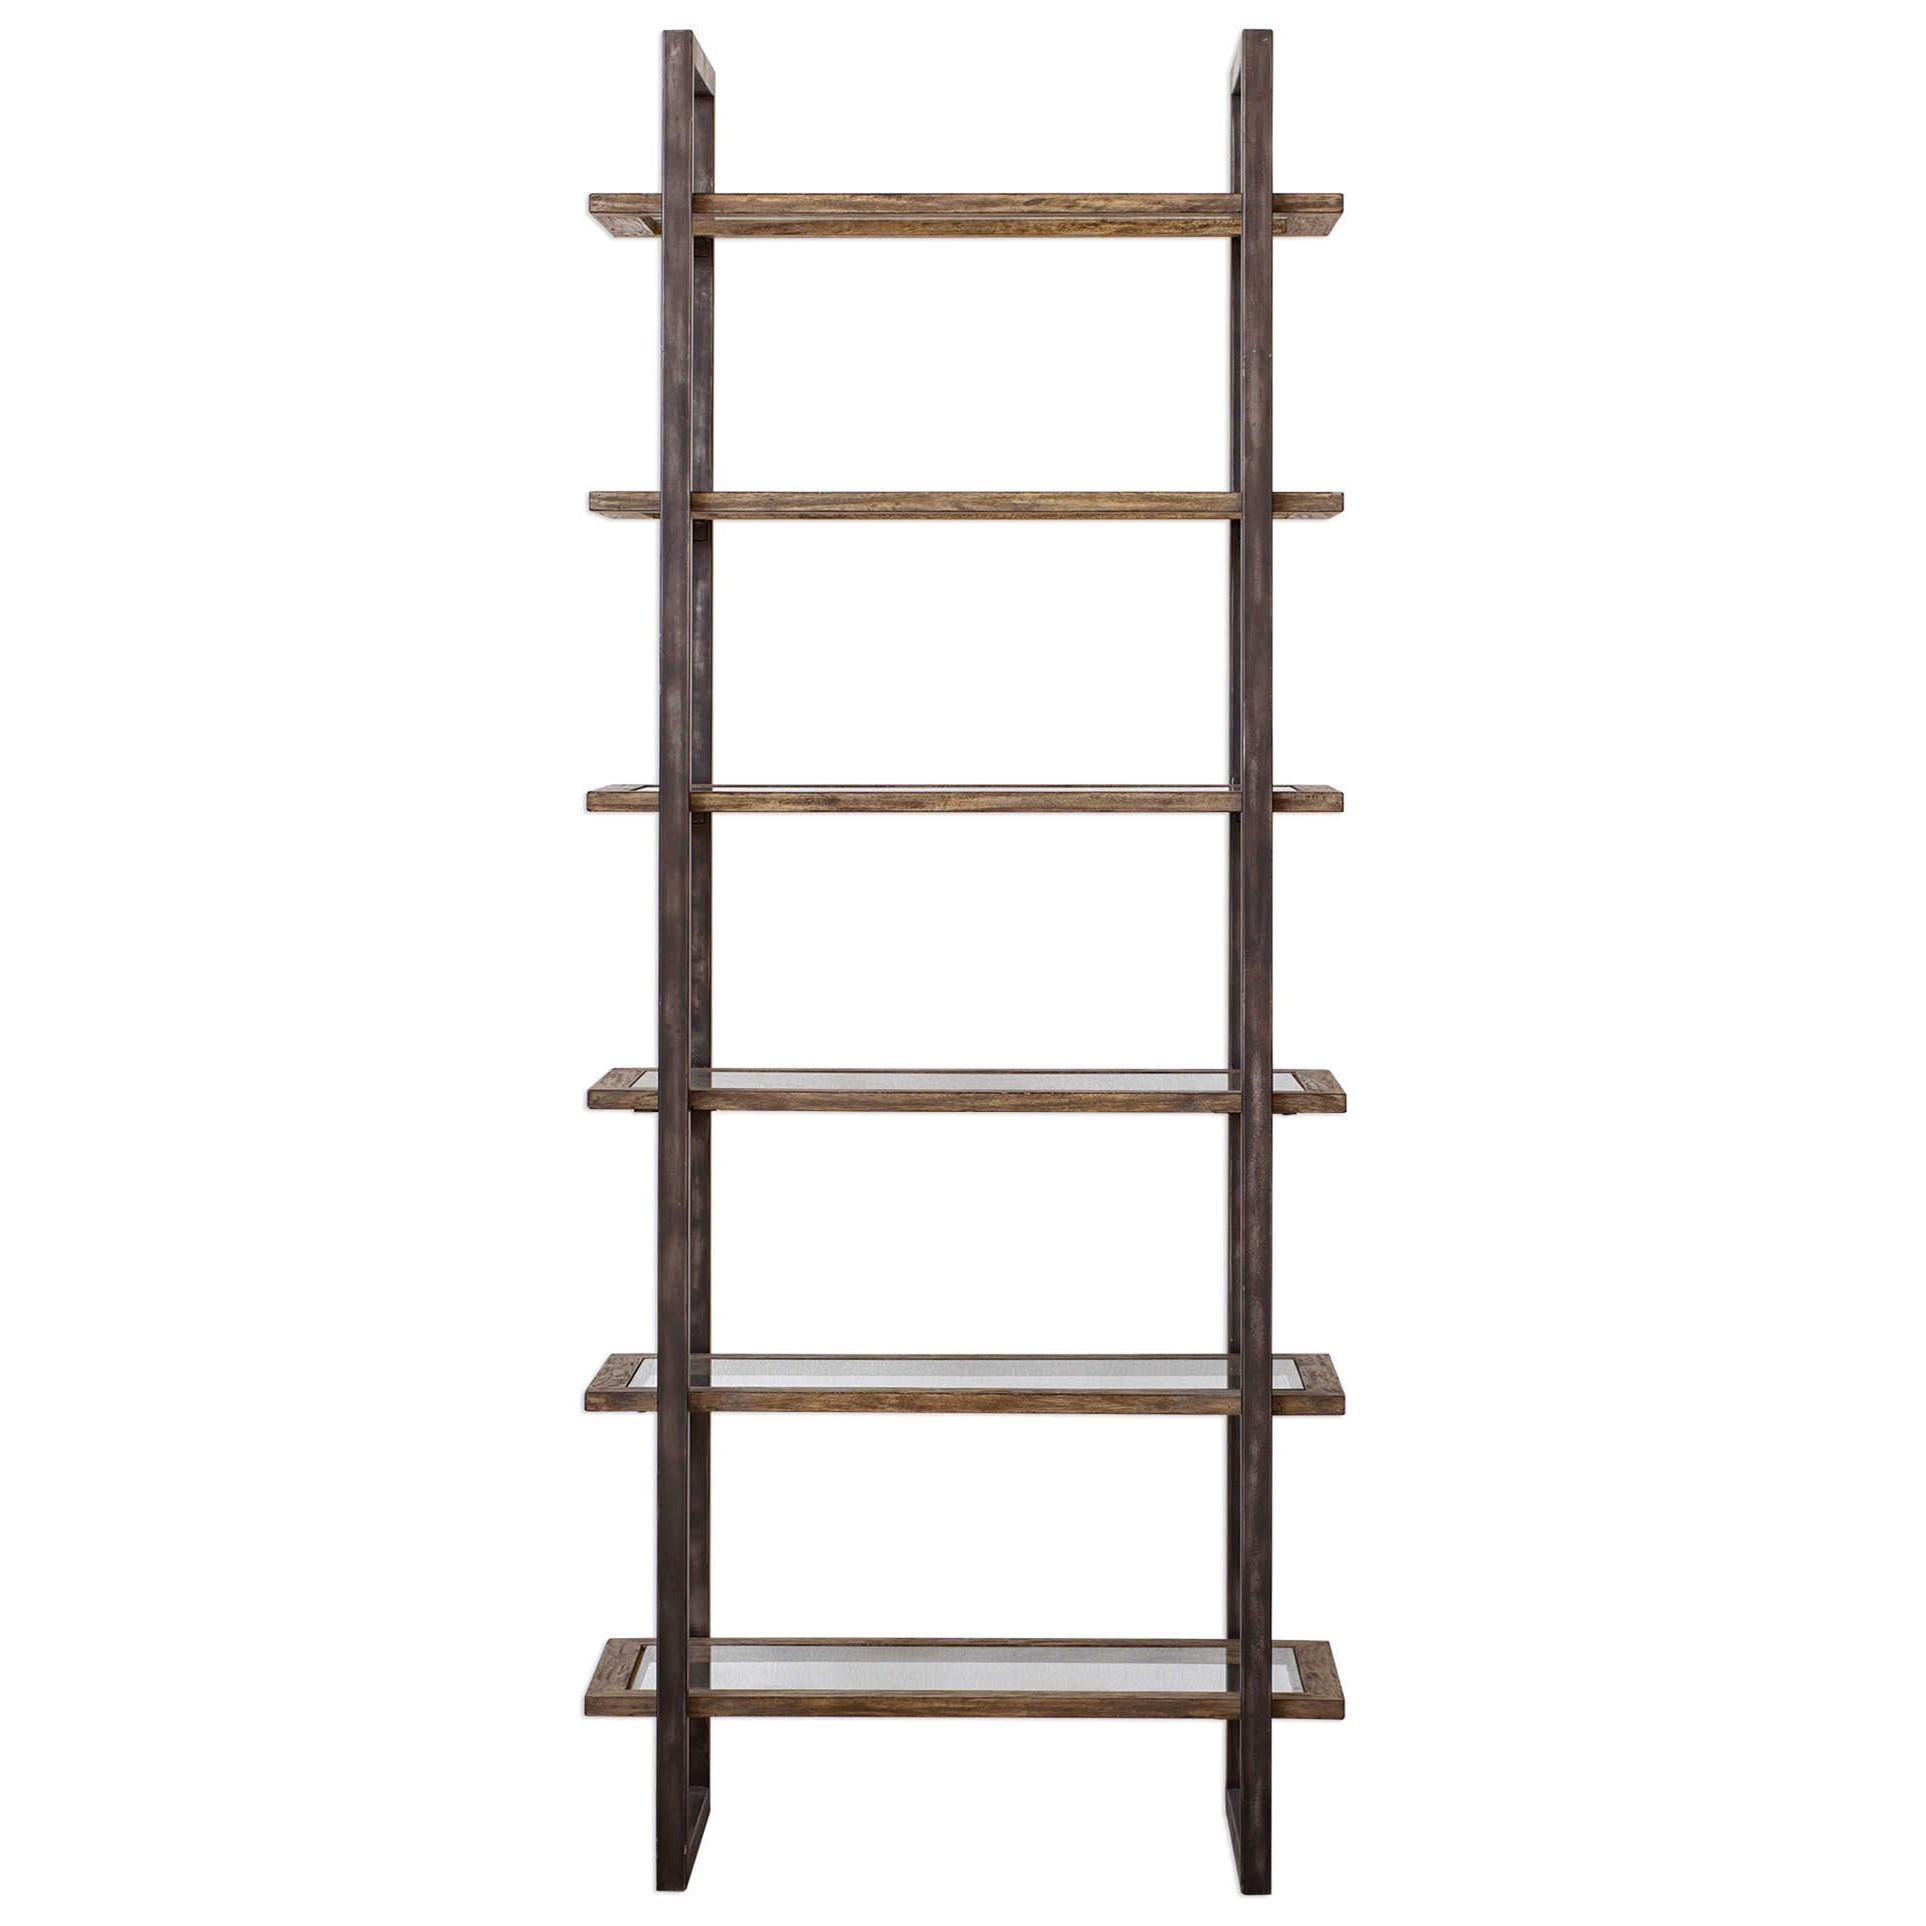 Accent Furniture - Bookcases Olwyn Industrial Etagere by Uttermost at Factory Direct Furniture